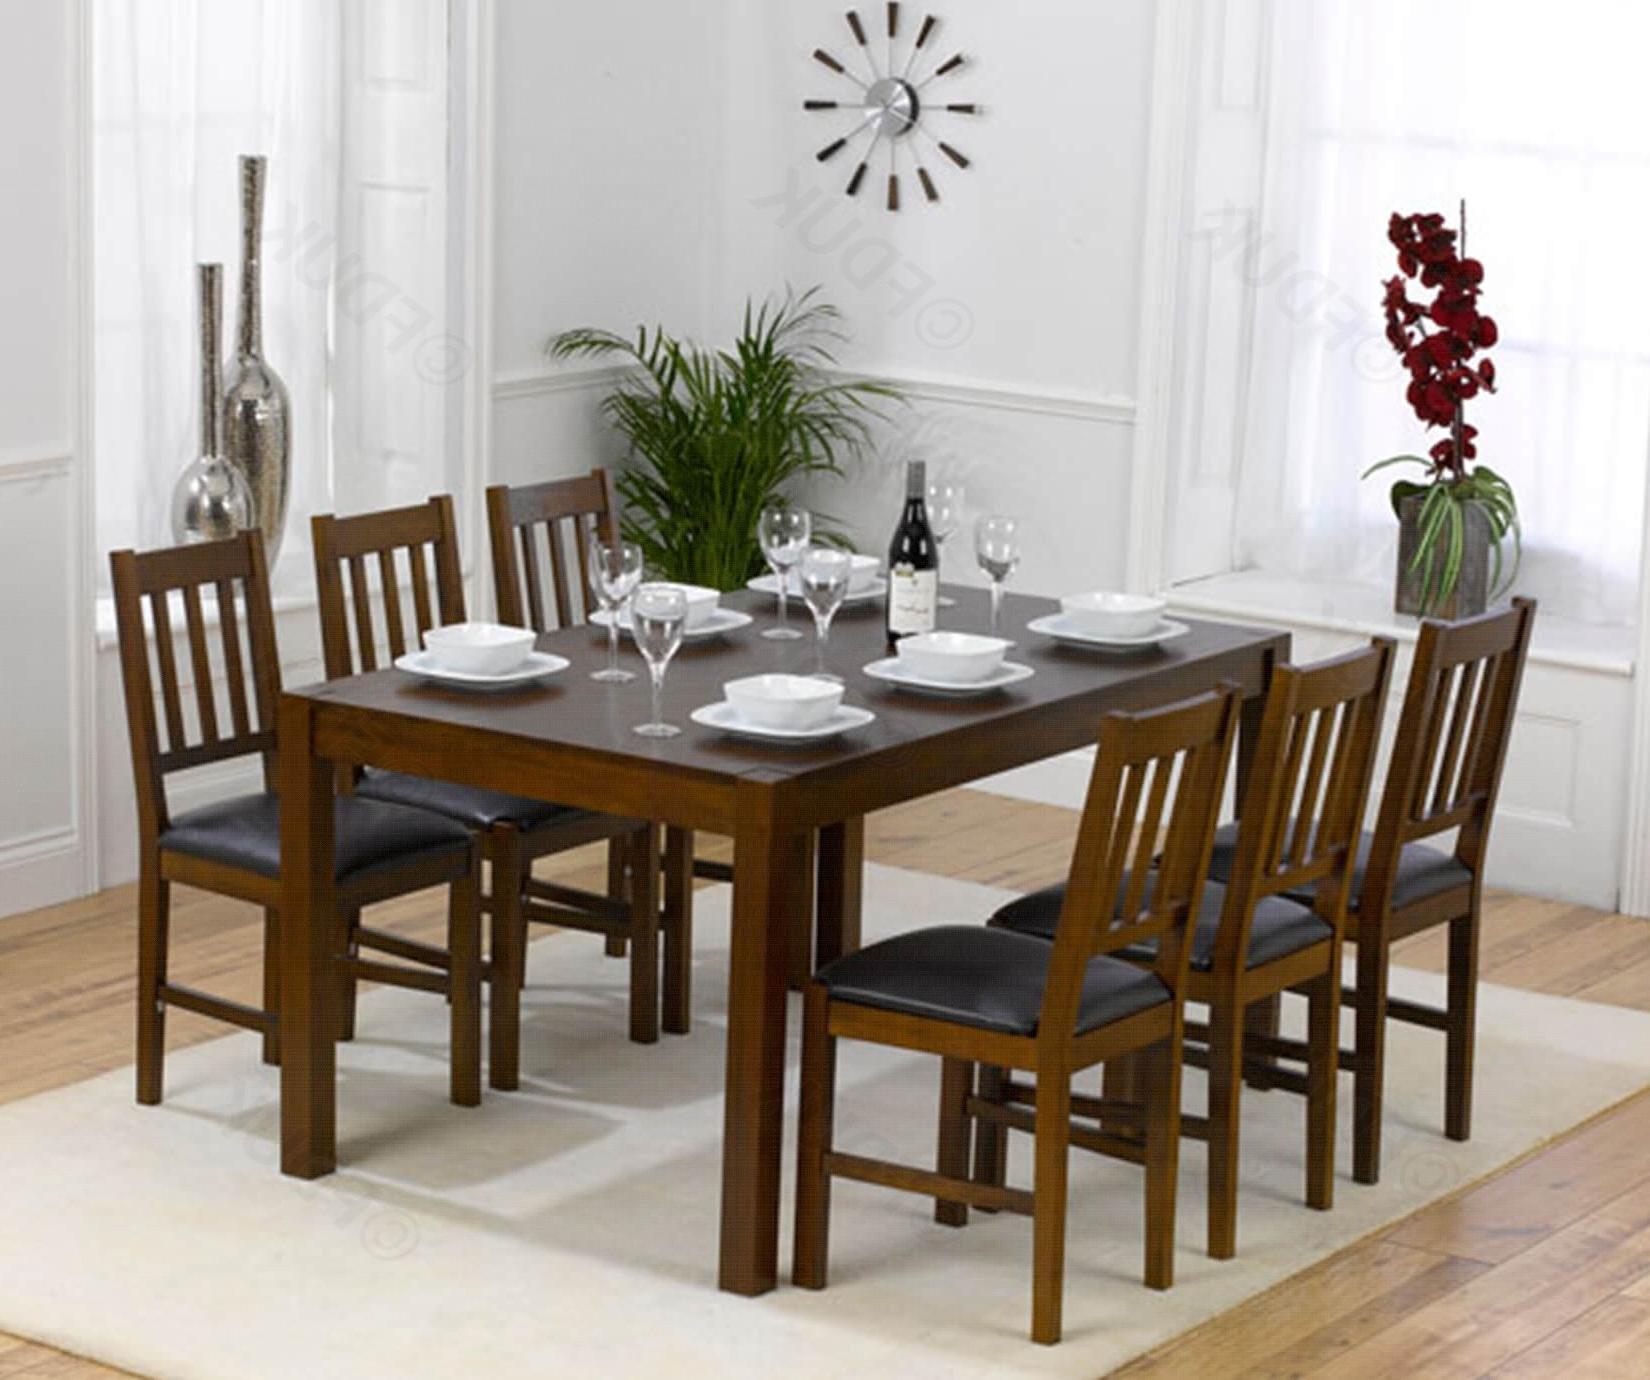 Marbella Solid Dark Oak Dining Table With 6 Throughout Dark Wood Dining Tables And 6 Chairs (Gallery 18 of 25)